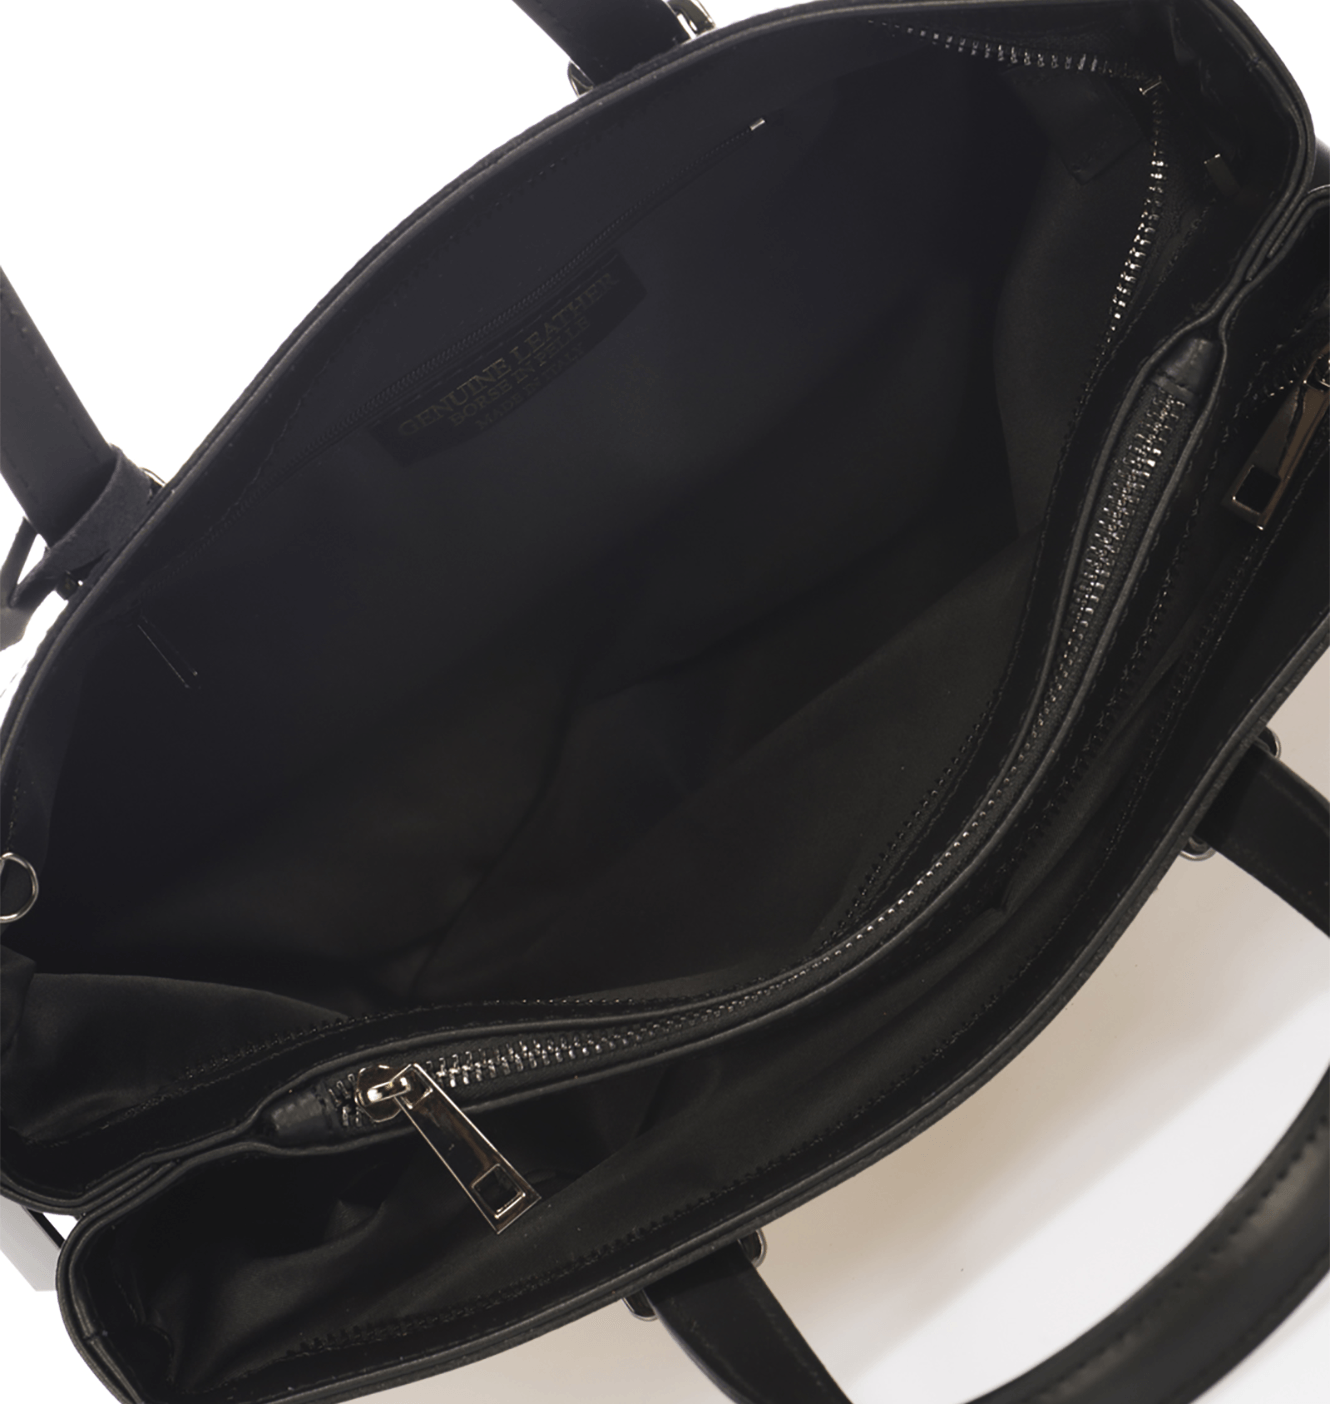 West Street Satchel - Midnight Black